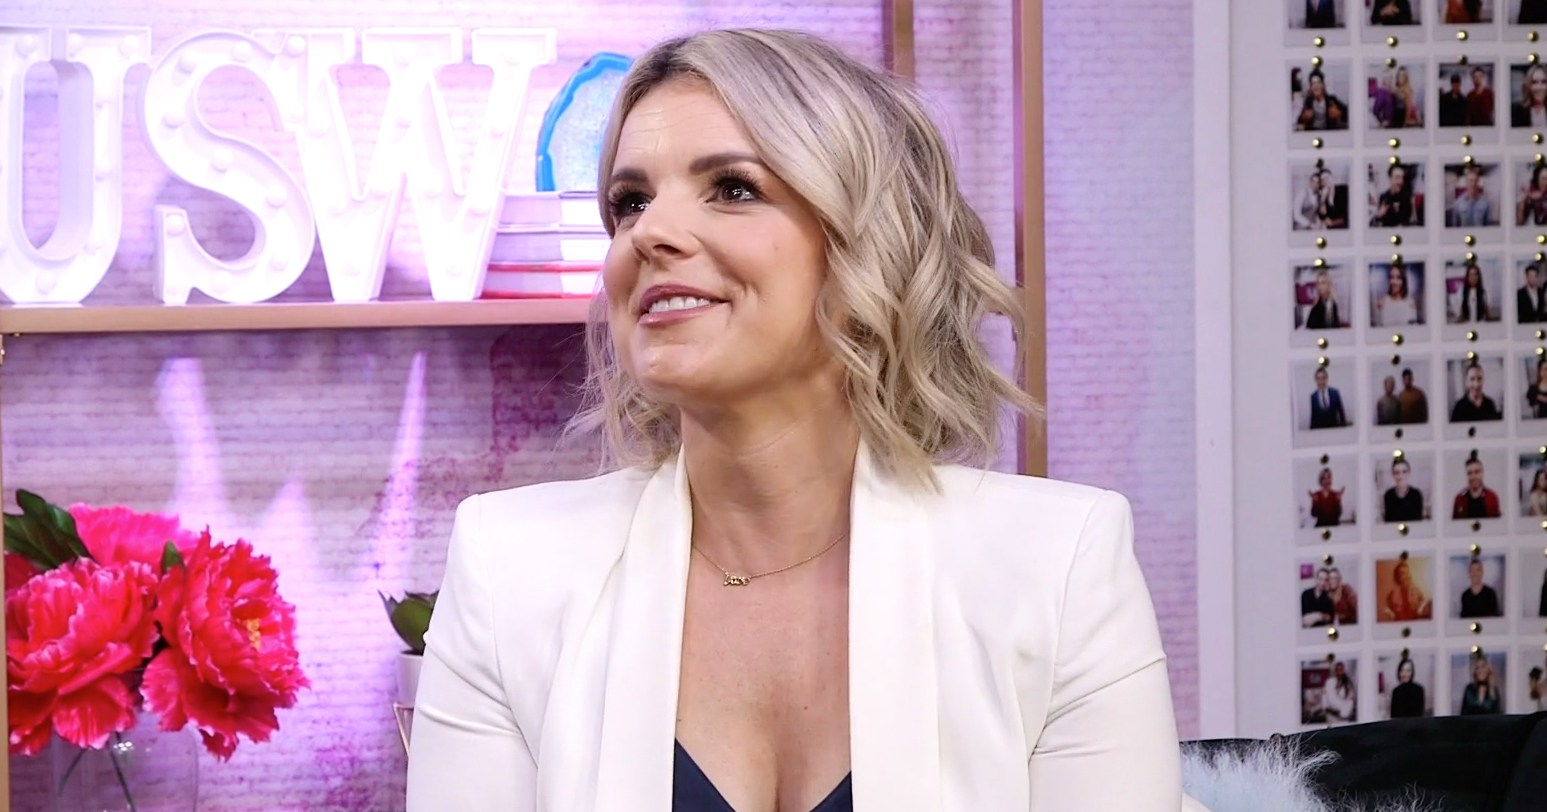 Ali Fedotowsky Considering Adoption for Baby No. 3